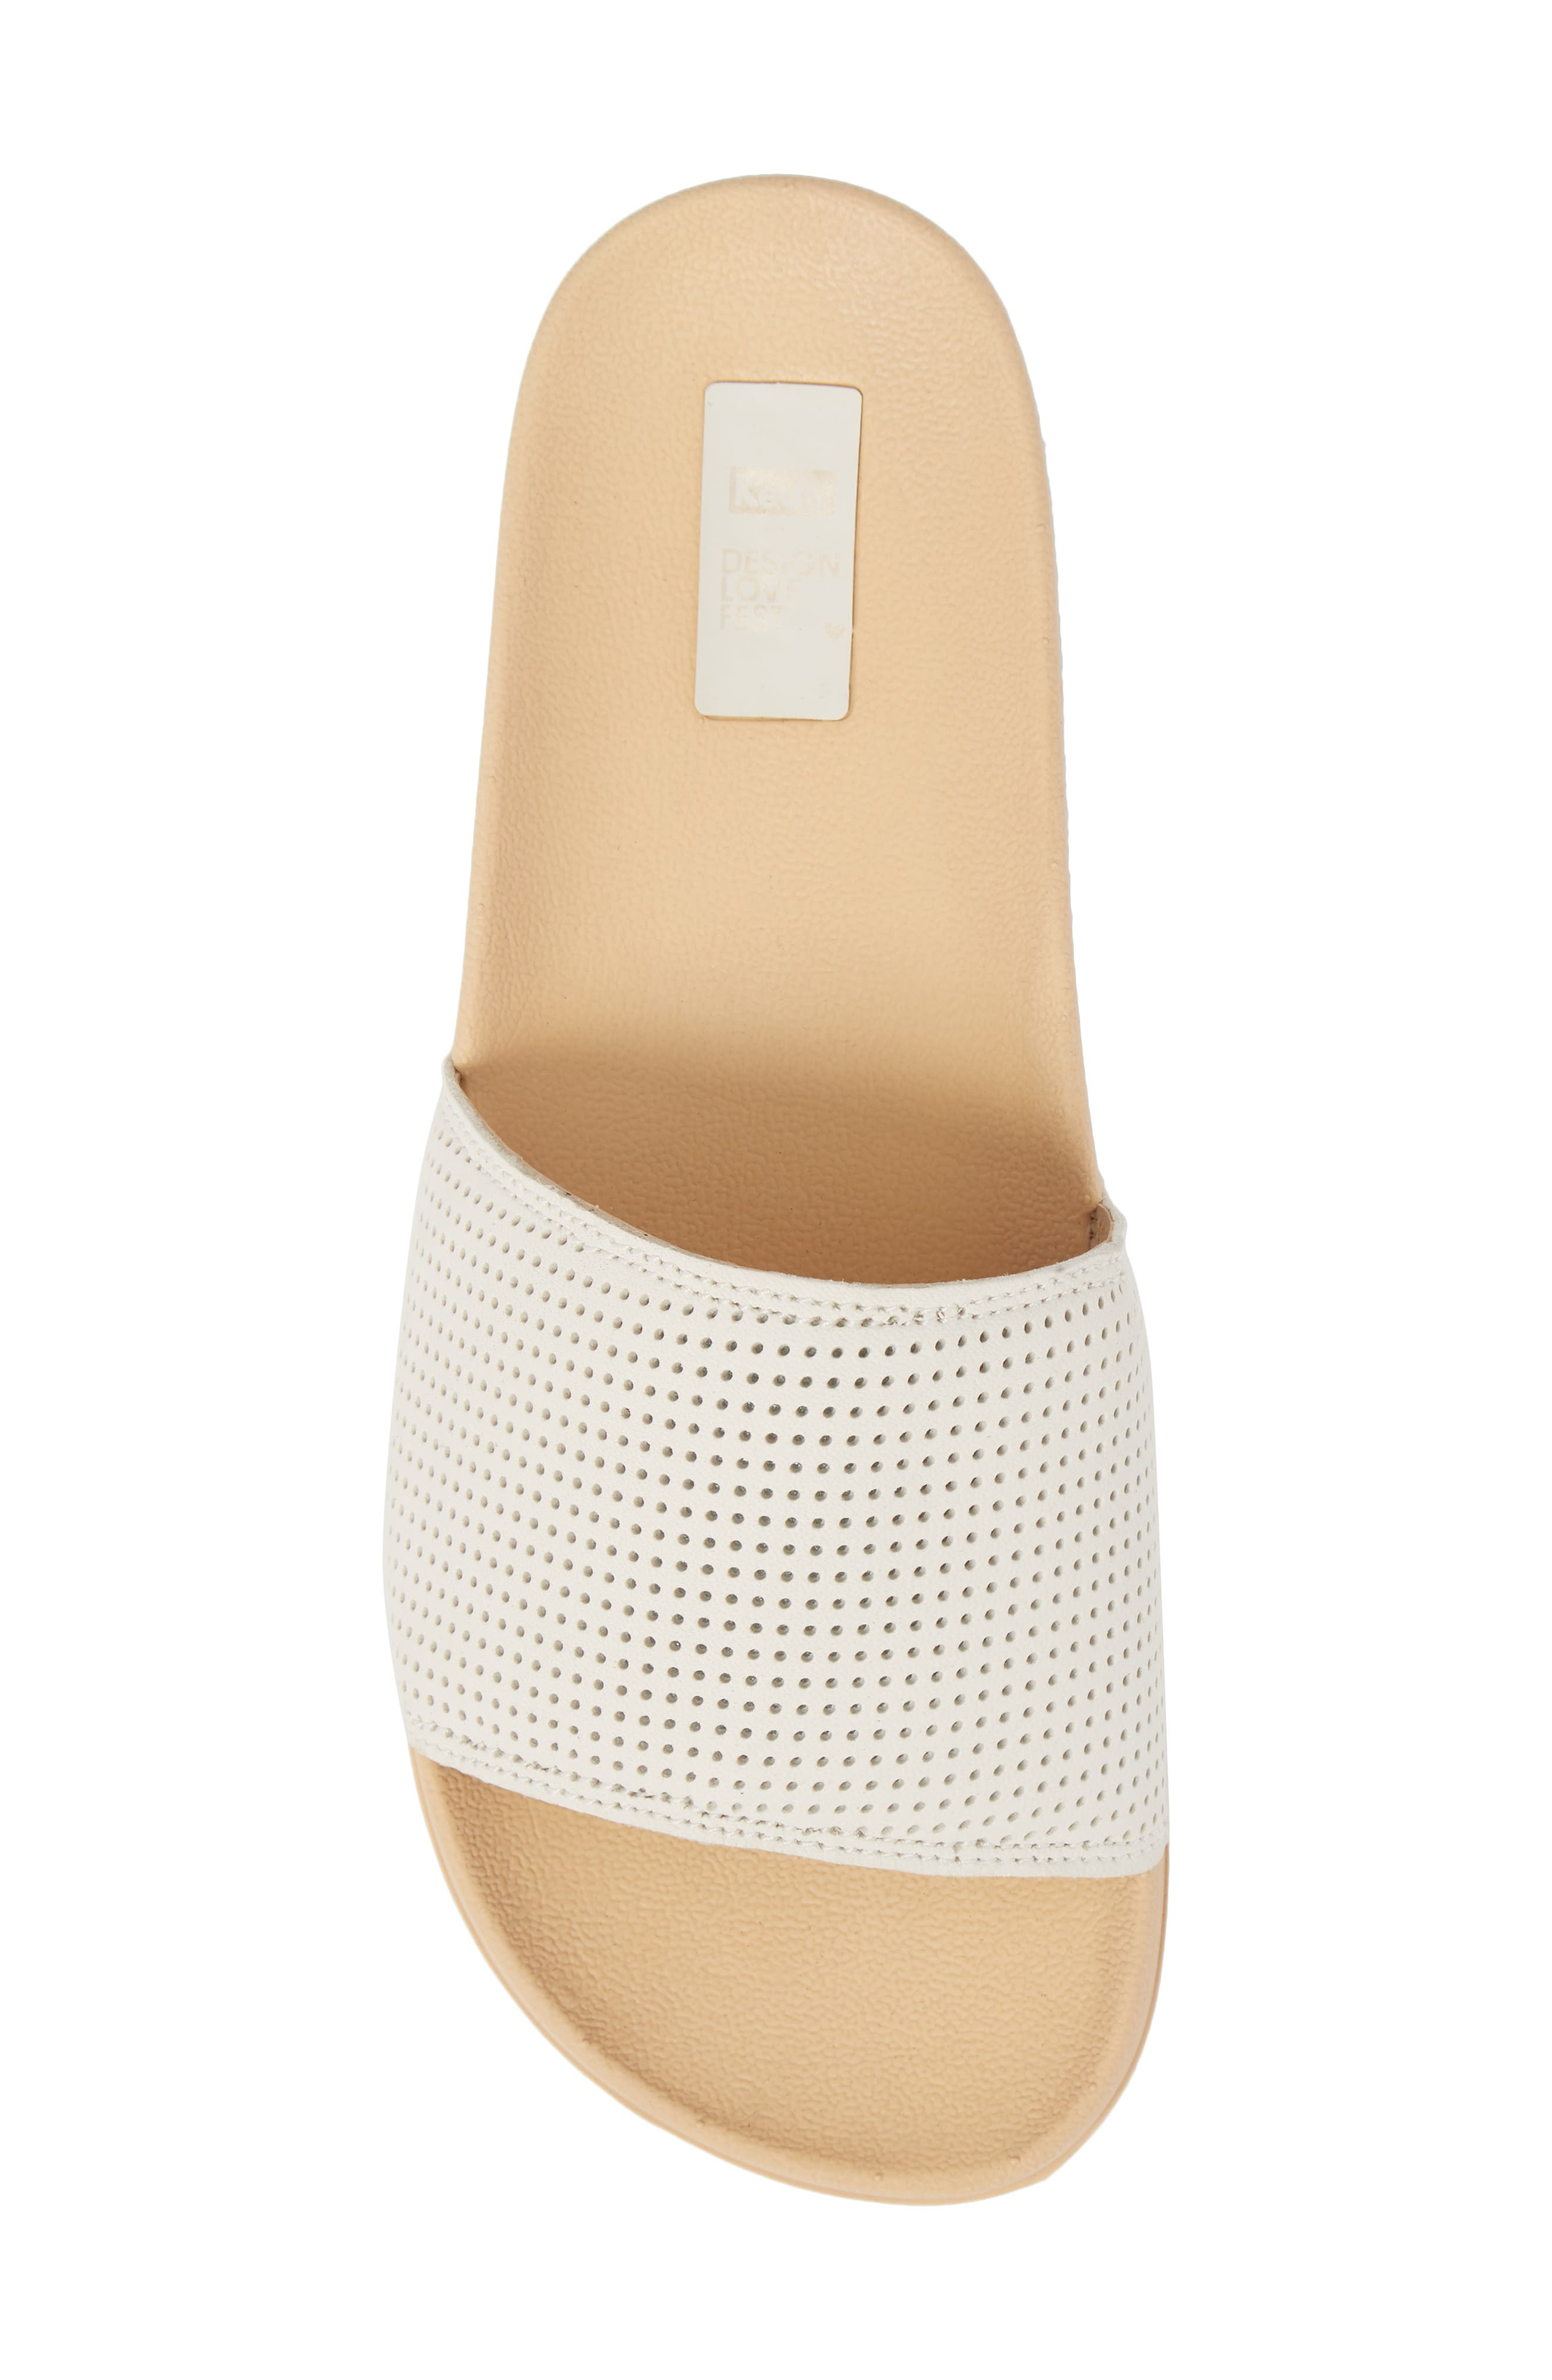 x Designlovefest Bliss Slide Sandal,                             Alternate thumbnail 5, color,                             CREAM/ TAN